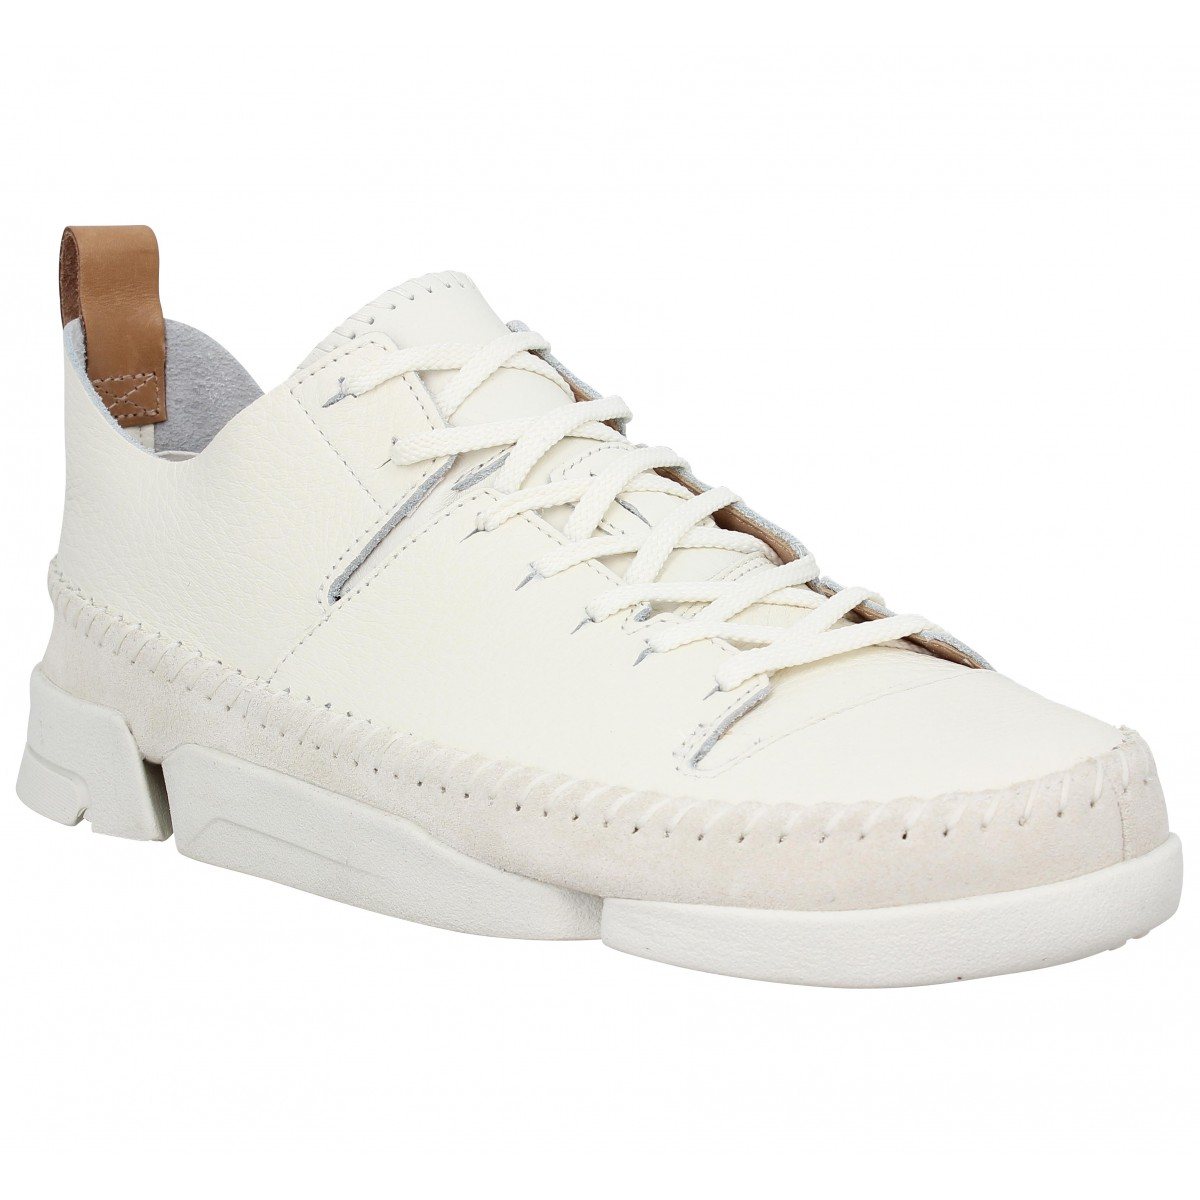 Clarks Originals TRIGENIC FLEX - Chaussures à lacets blanc